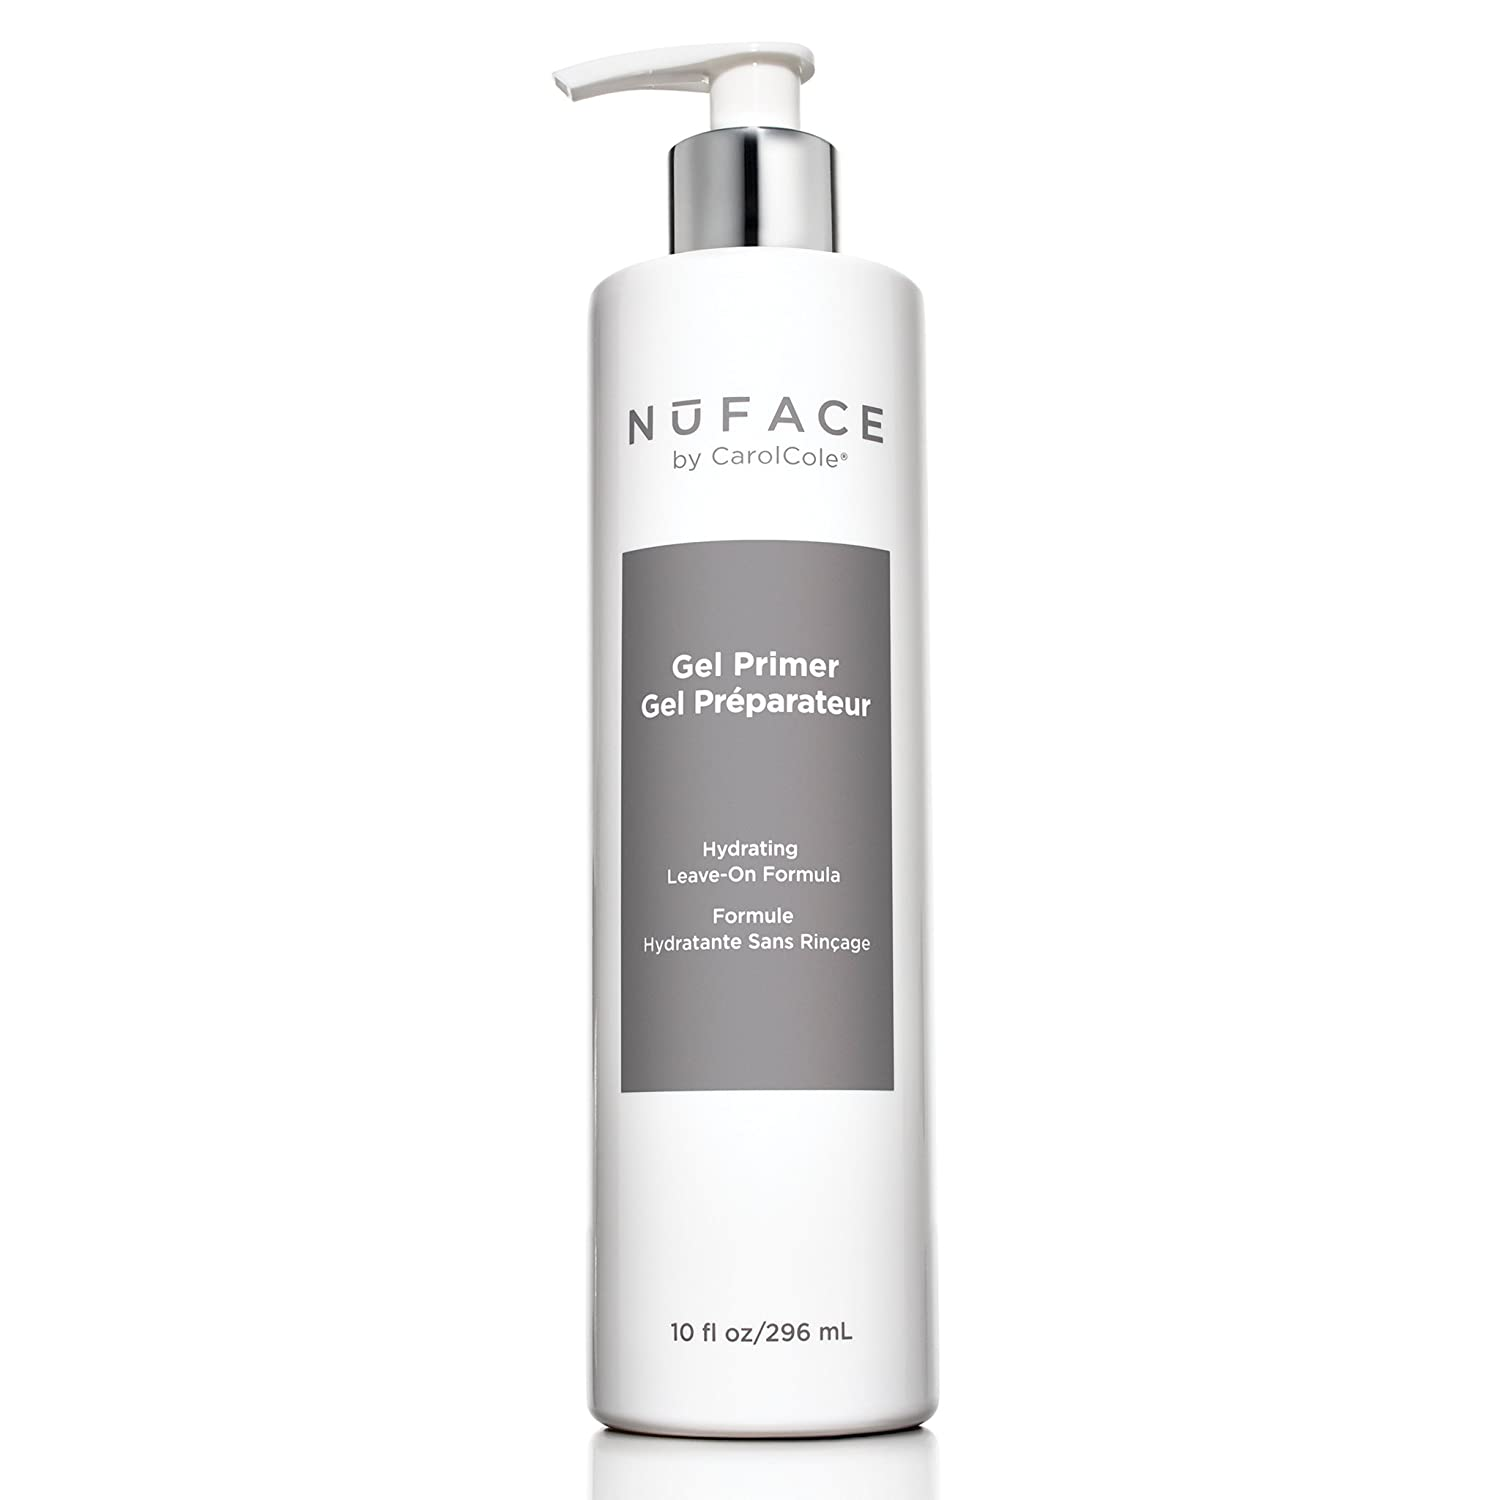 NuFACE Hydrating Gel Primer